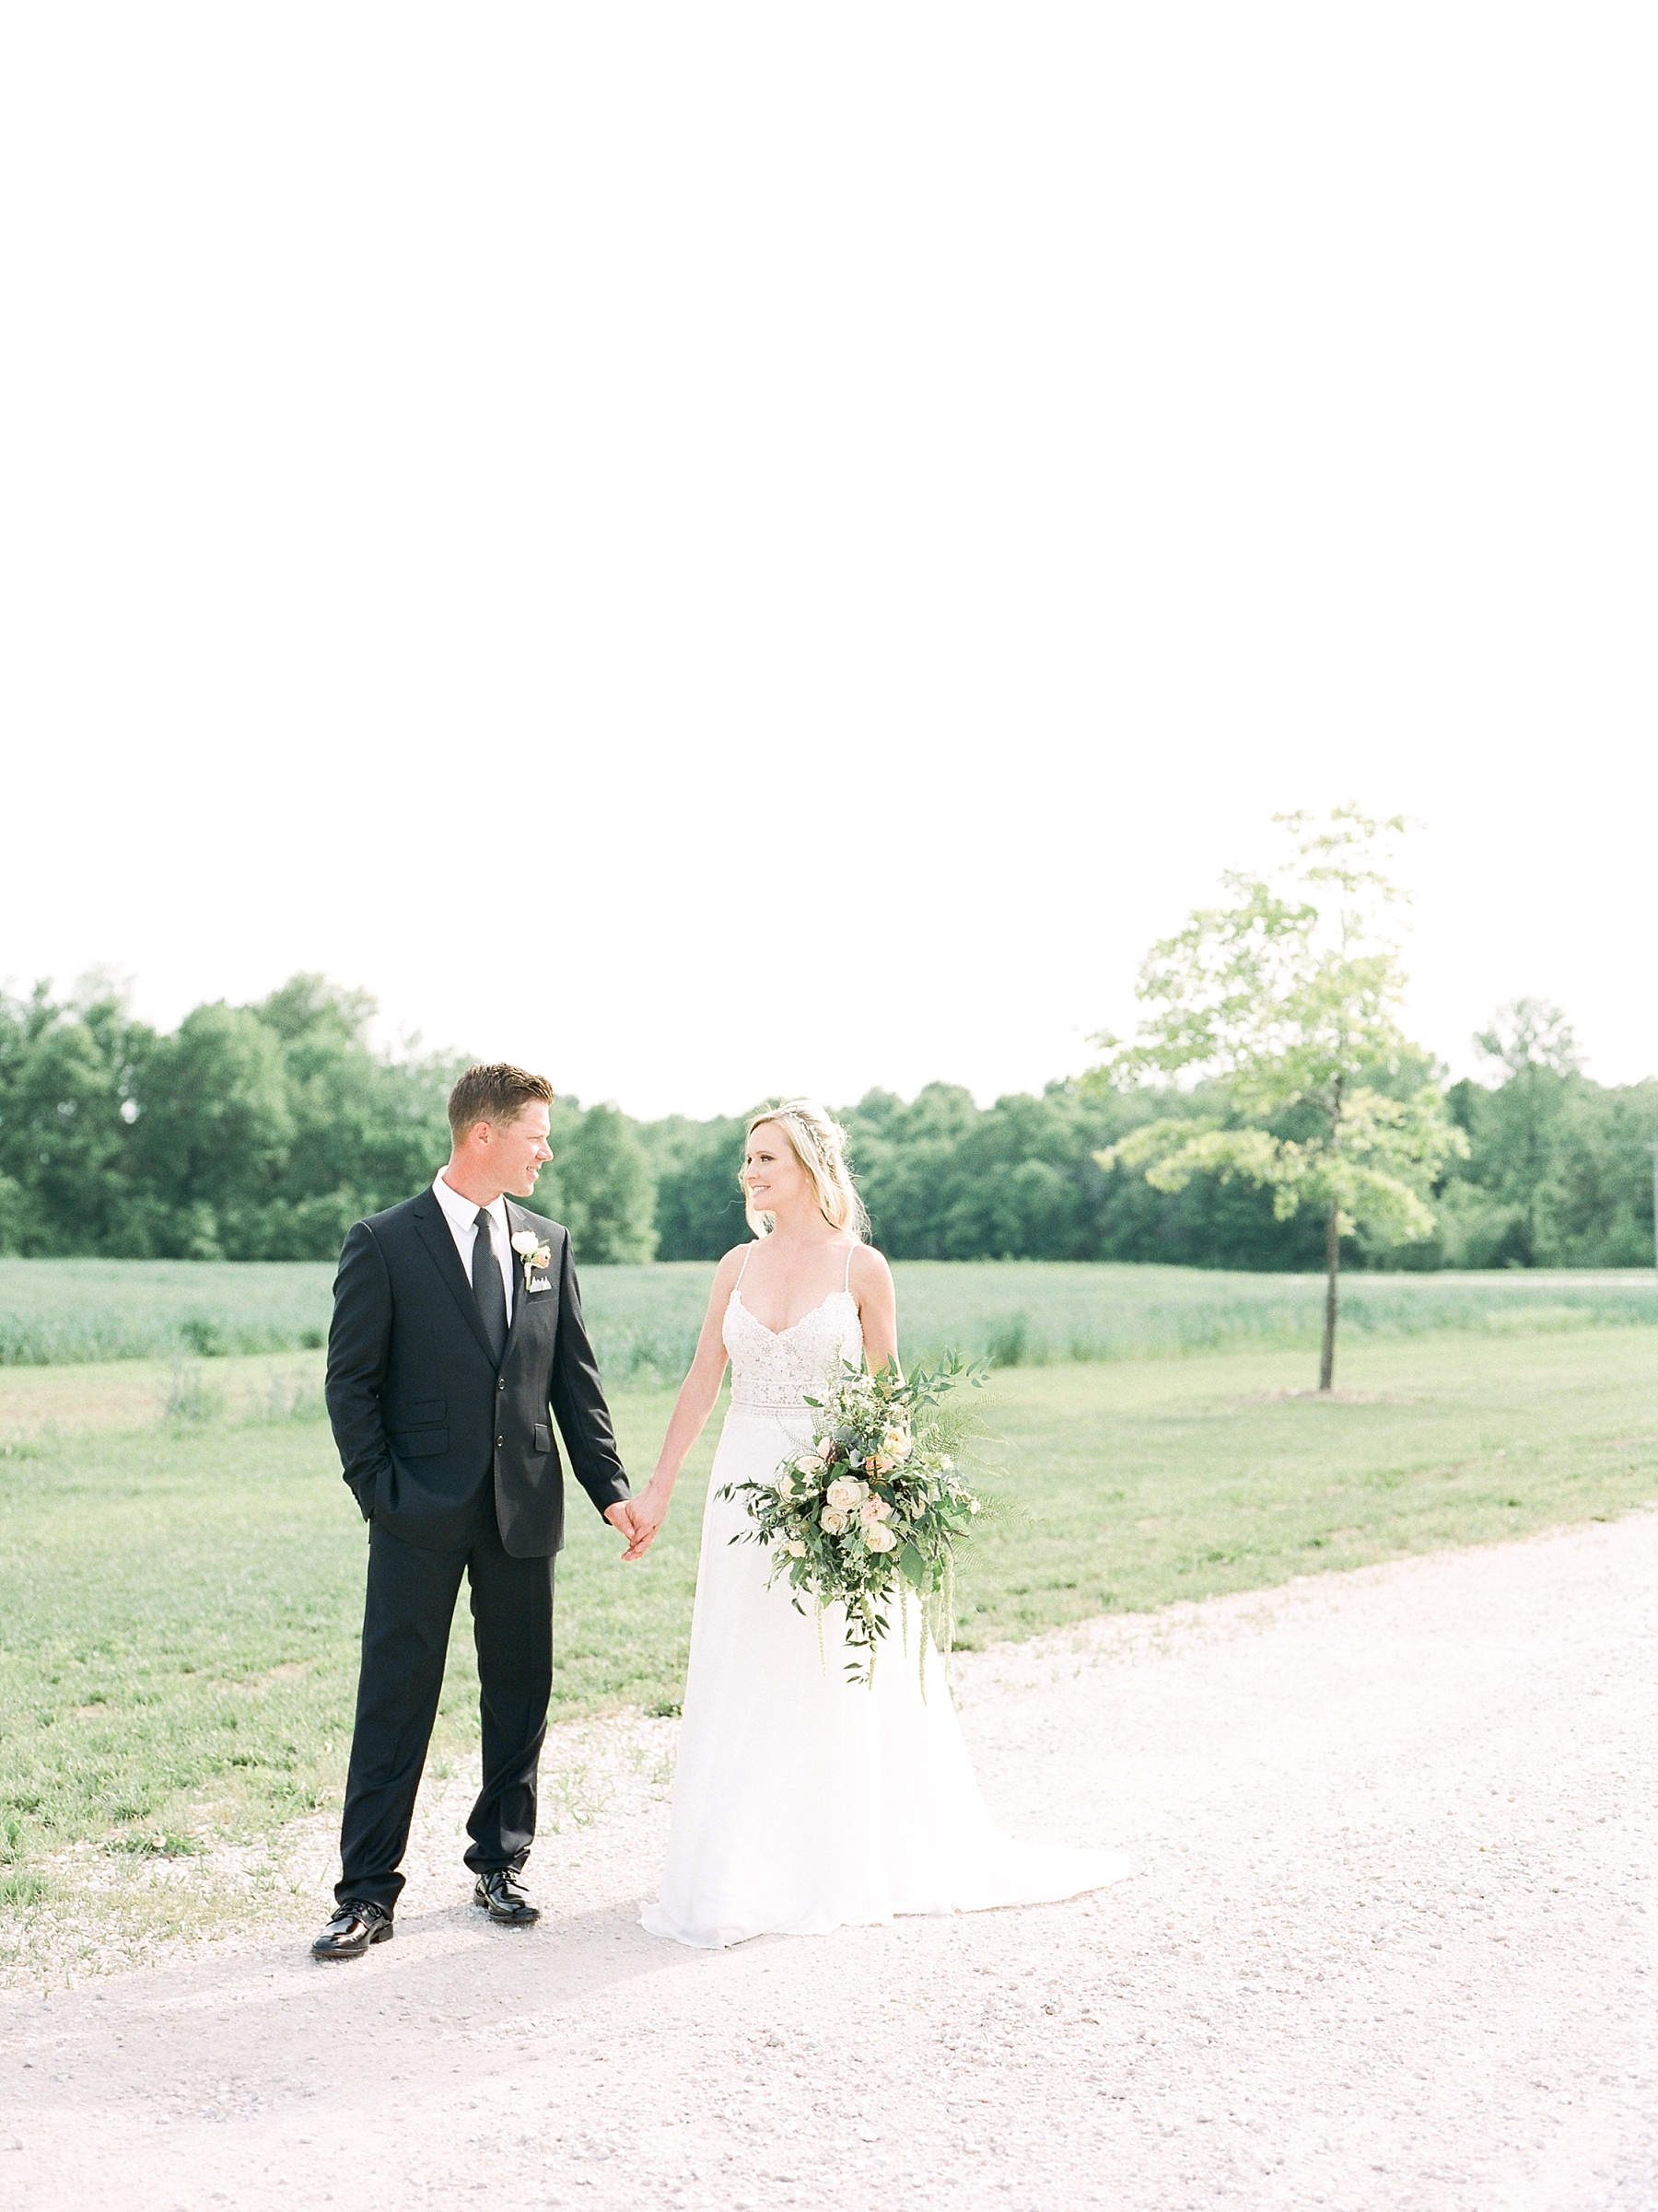 Textural Organic Wedding in All White Venue by Kelsi Kliethermes Wedding Photographer - Missouri, Midwest, and Destinations_0059.jpg